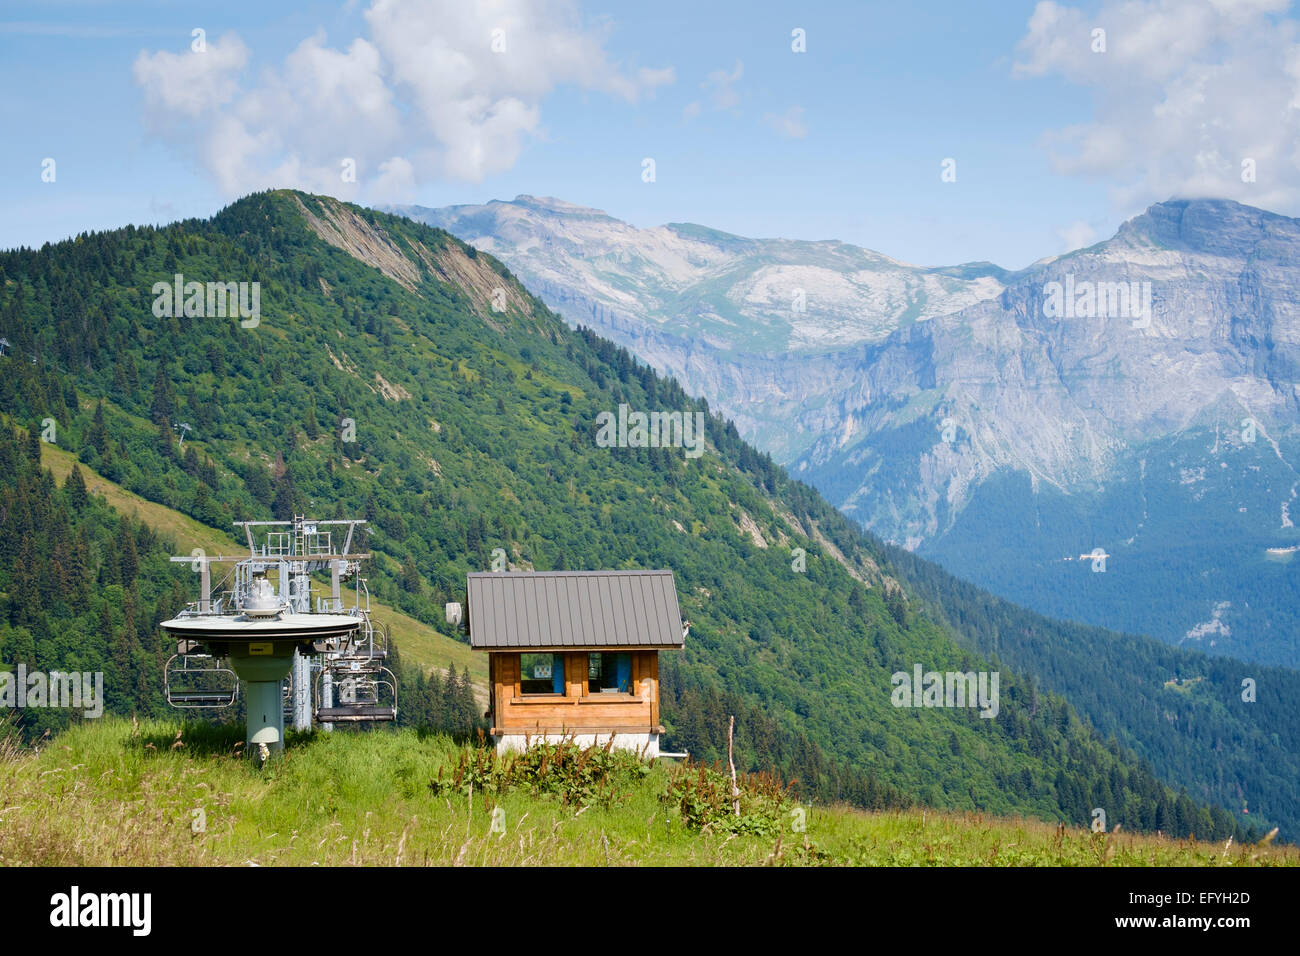 Chairlift or ski lift above the Chamonix Valley, France, Europe - Stock Image